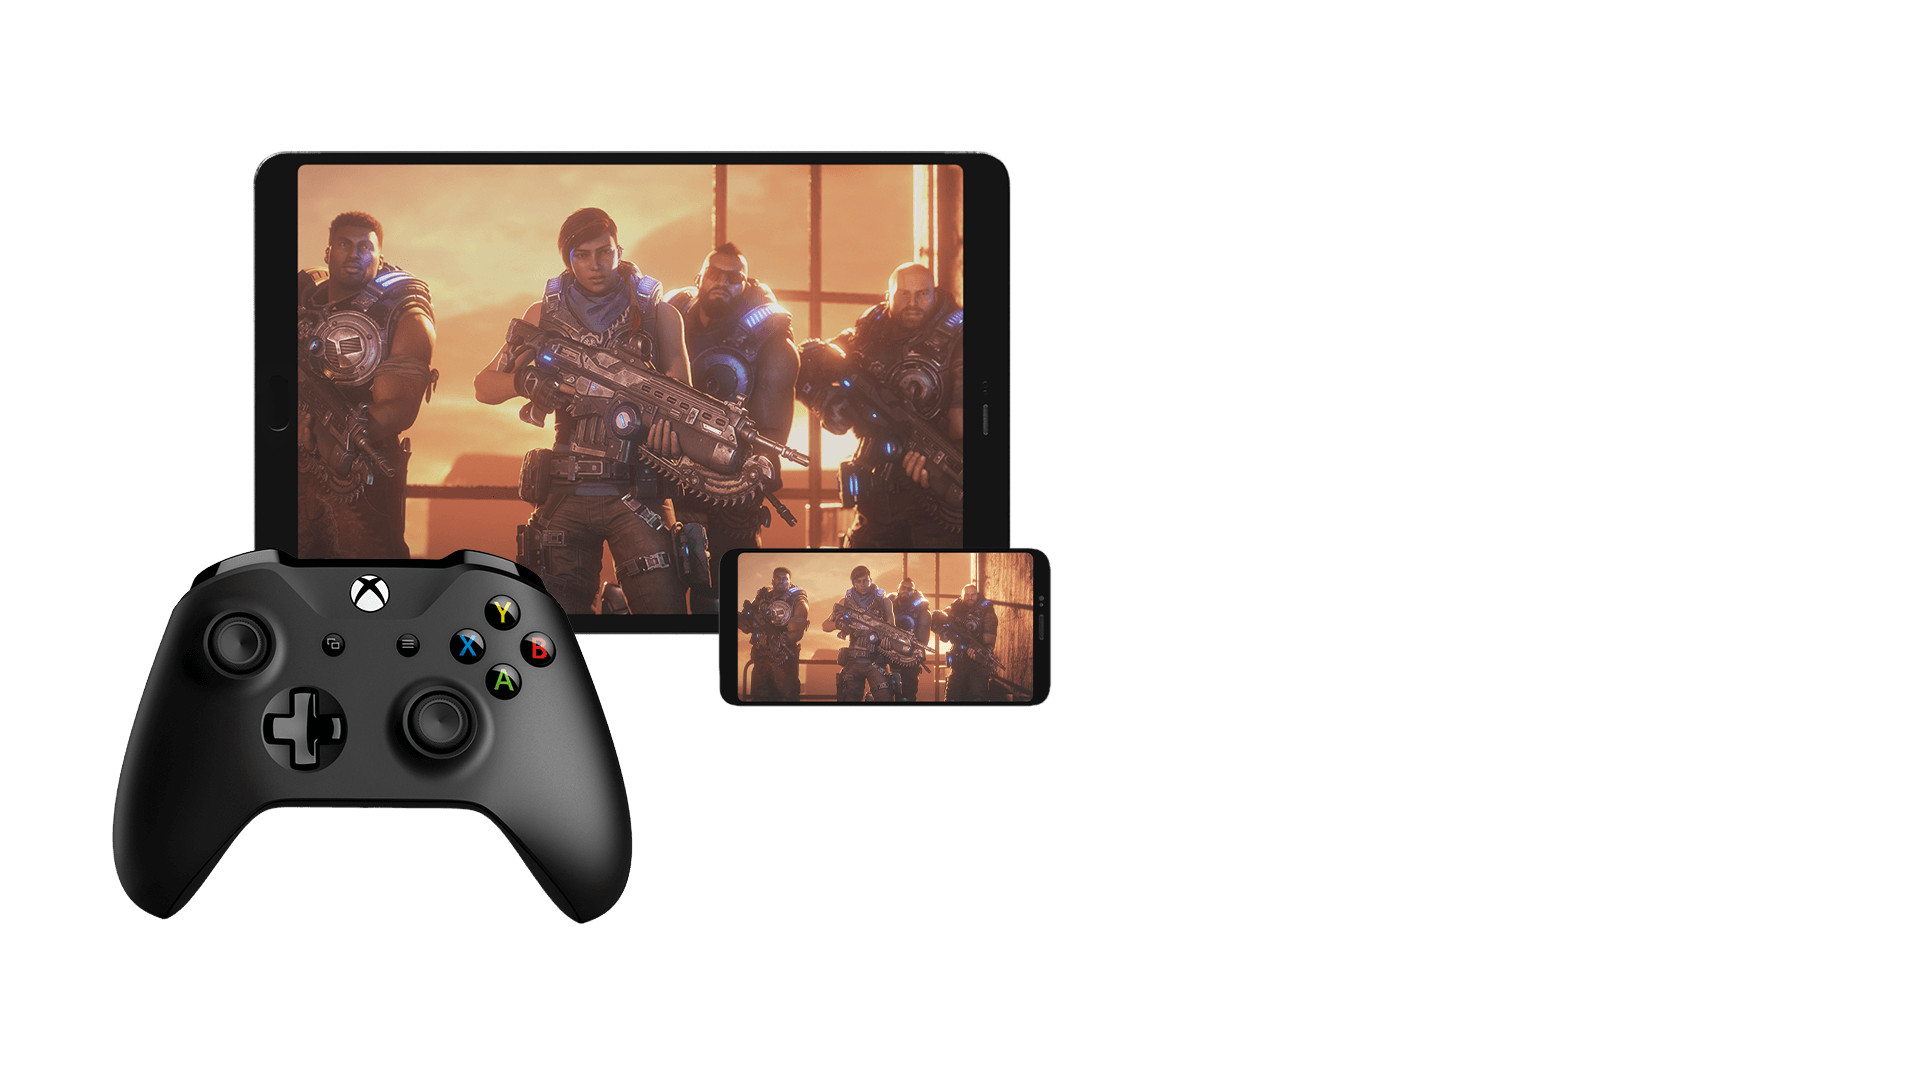 A tablet and smartphone displaying Gears 5 with an Xbox controller in the foreground